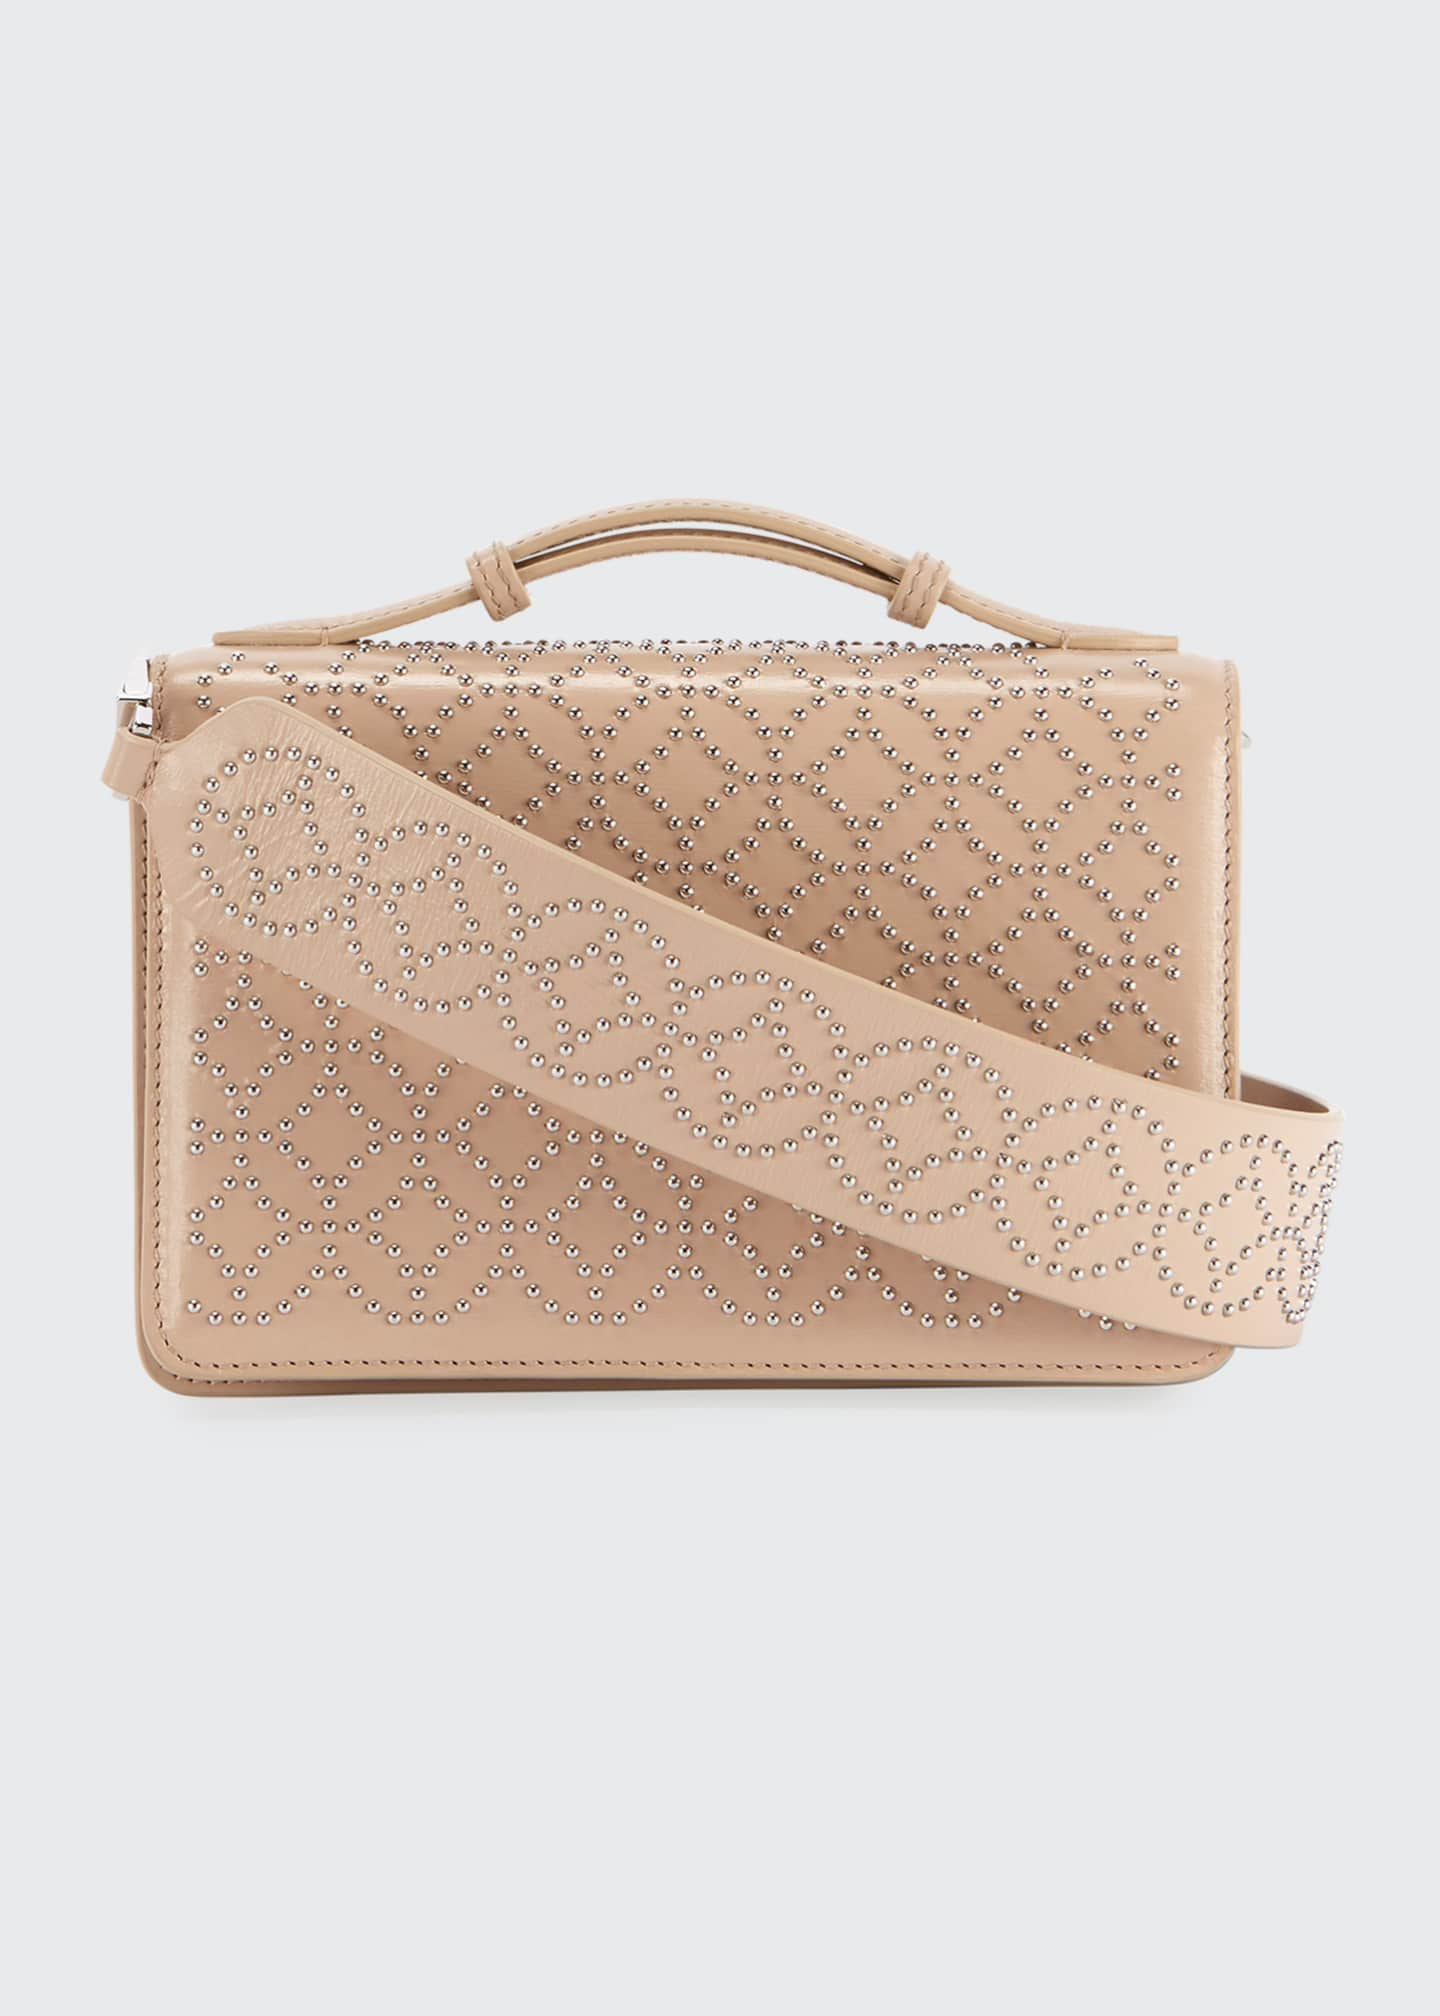 ALAIA Lux Studded Crossbody Clutch Bag